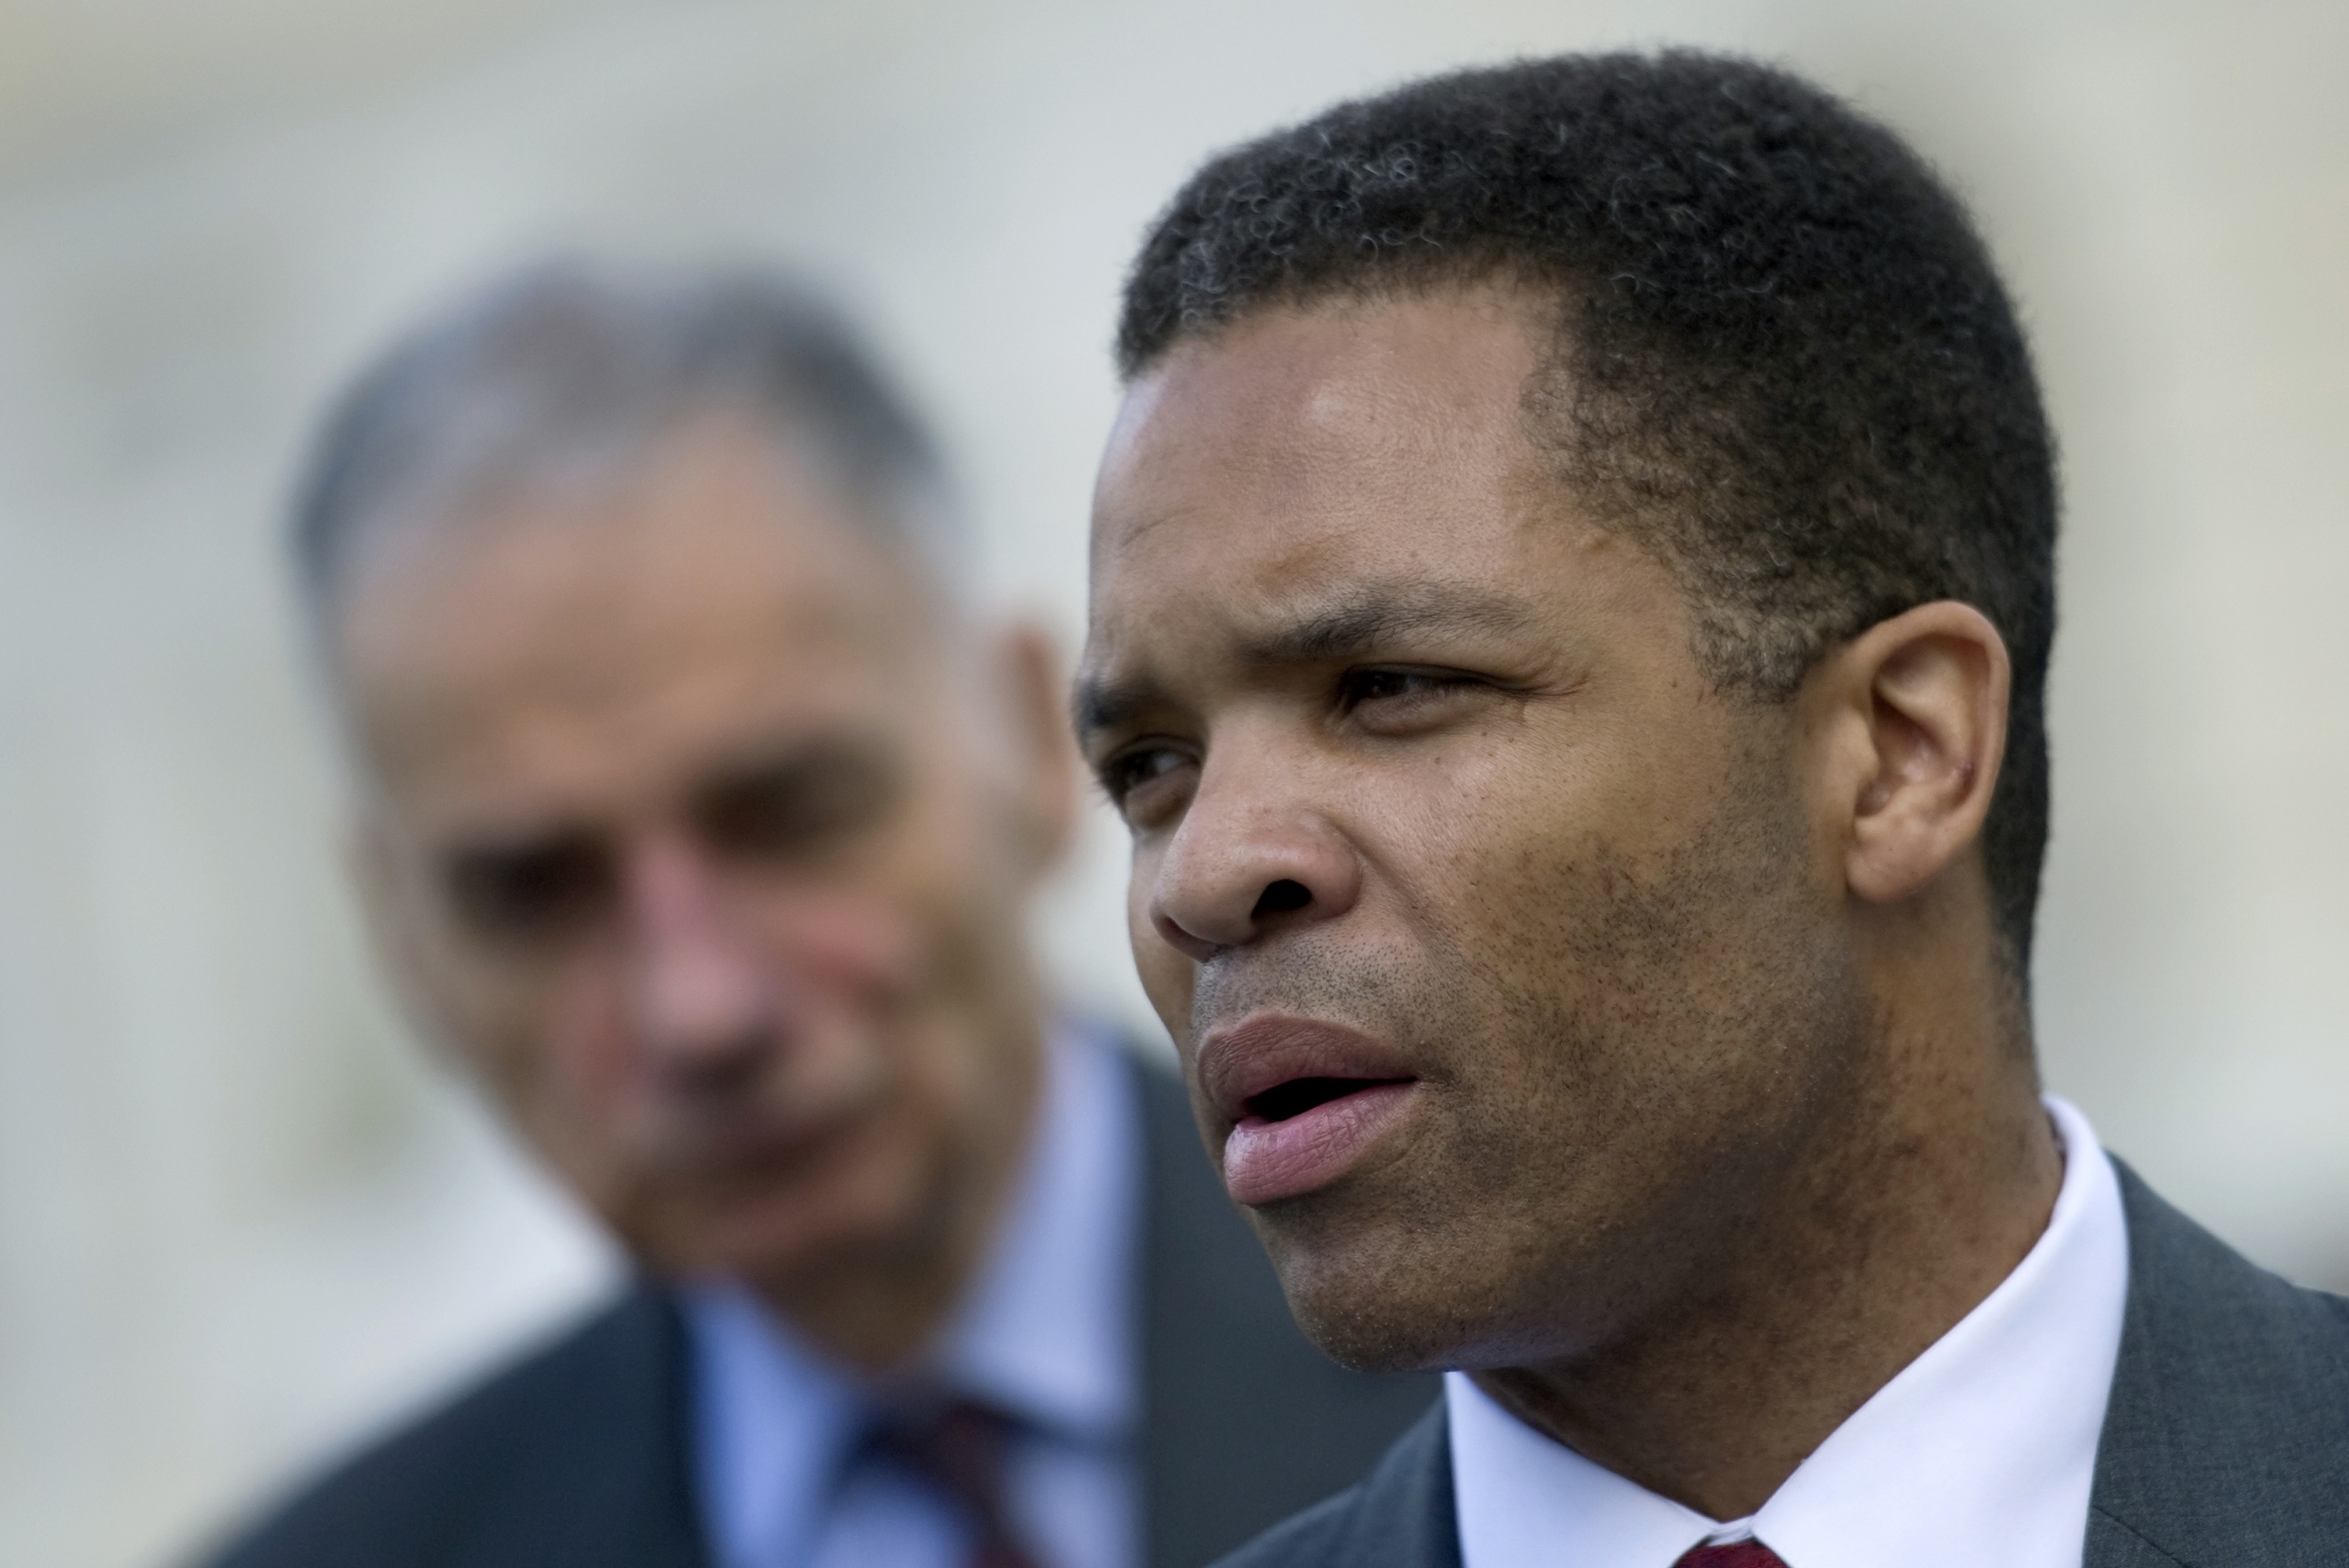 Rep. Jesse Jackson Jr. was sentenced to two and a half years for misuse of campaign funds. (Photo by Chris Maddaloni/CQ Roll Call File Photo)